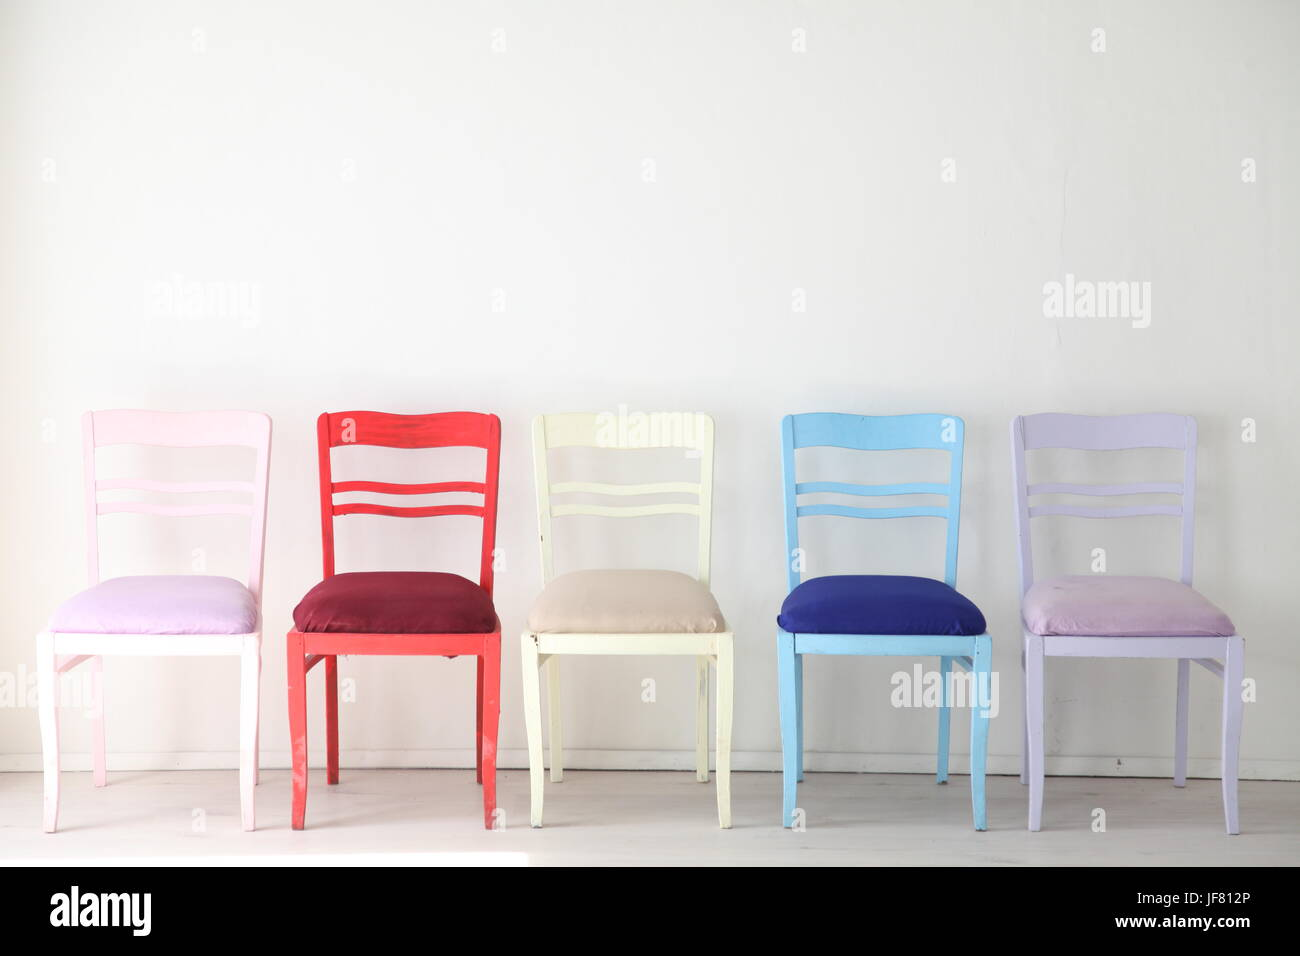 White room with colorful chairs blue yellow red blue purple - Stock Image